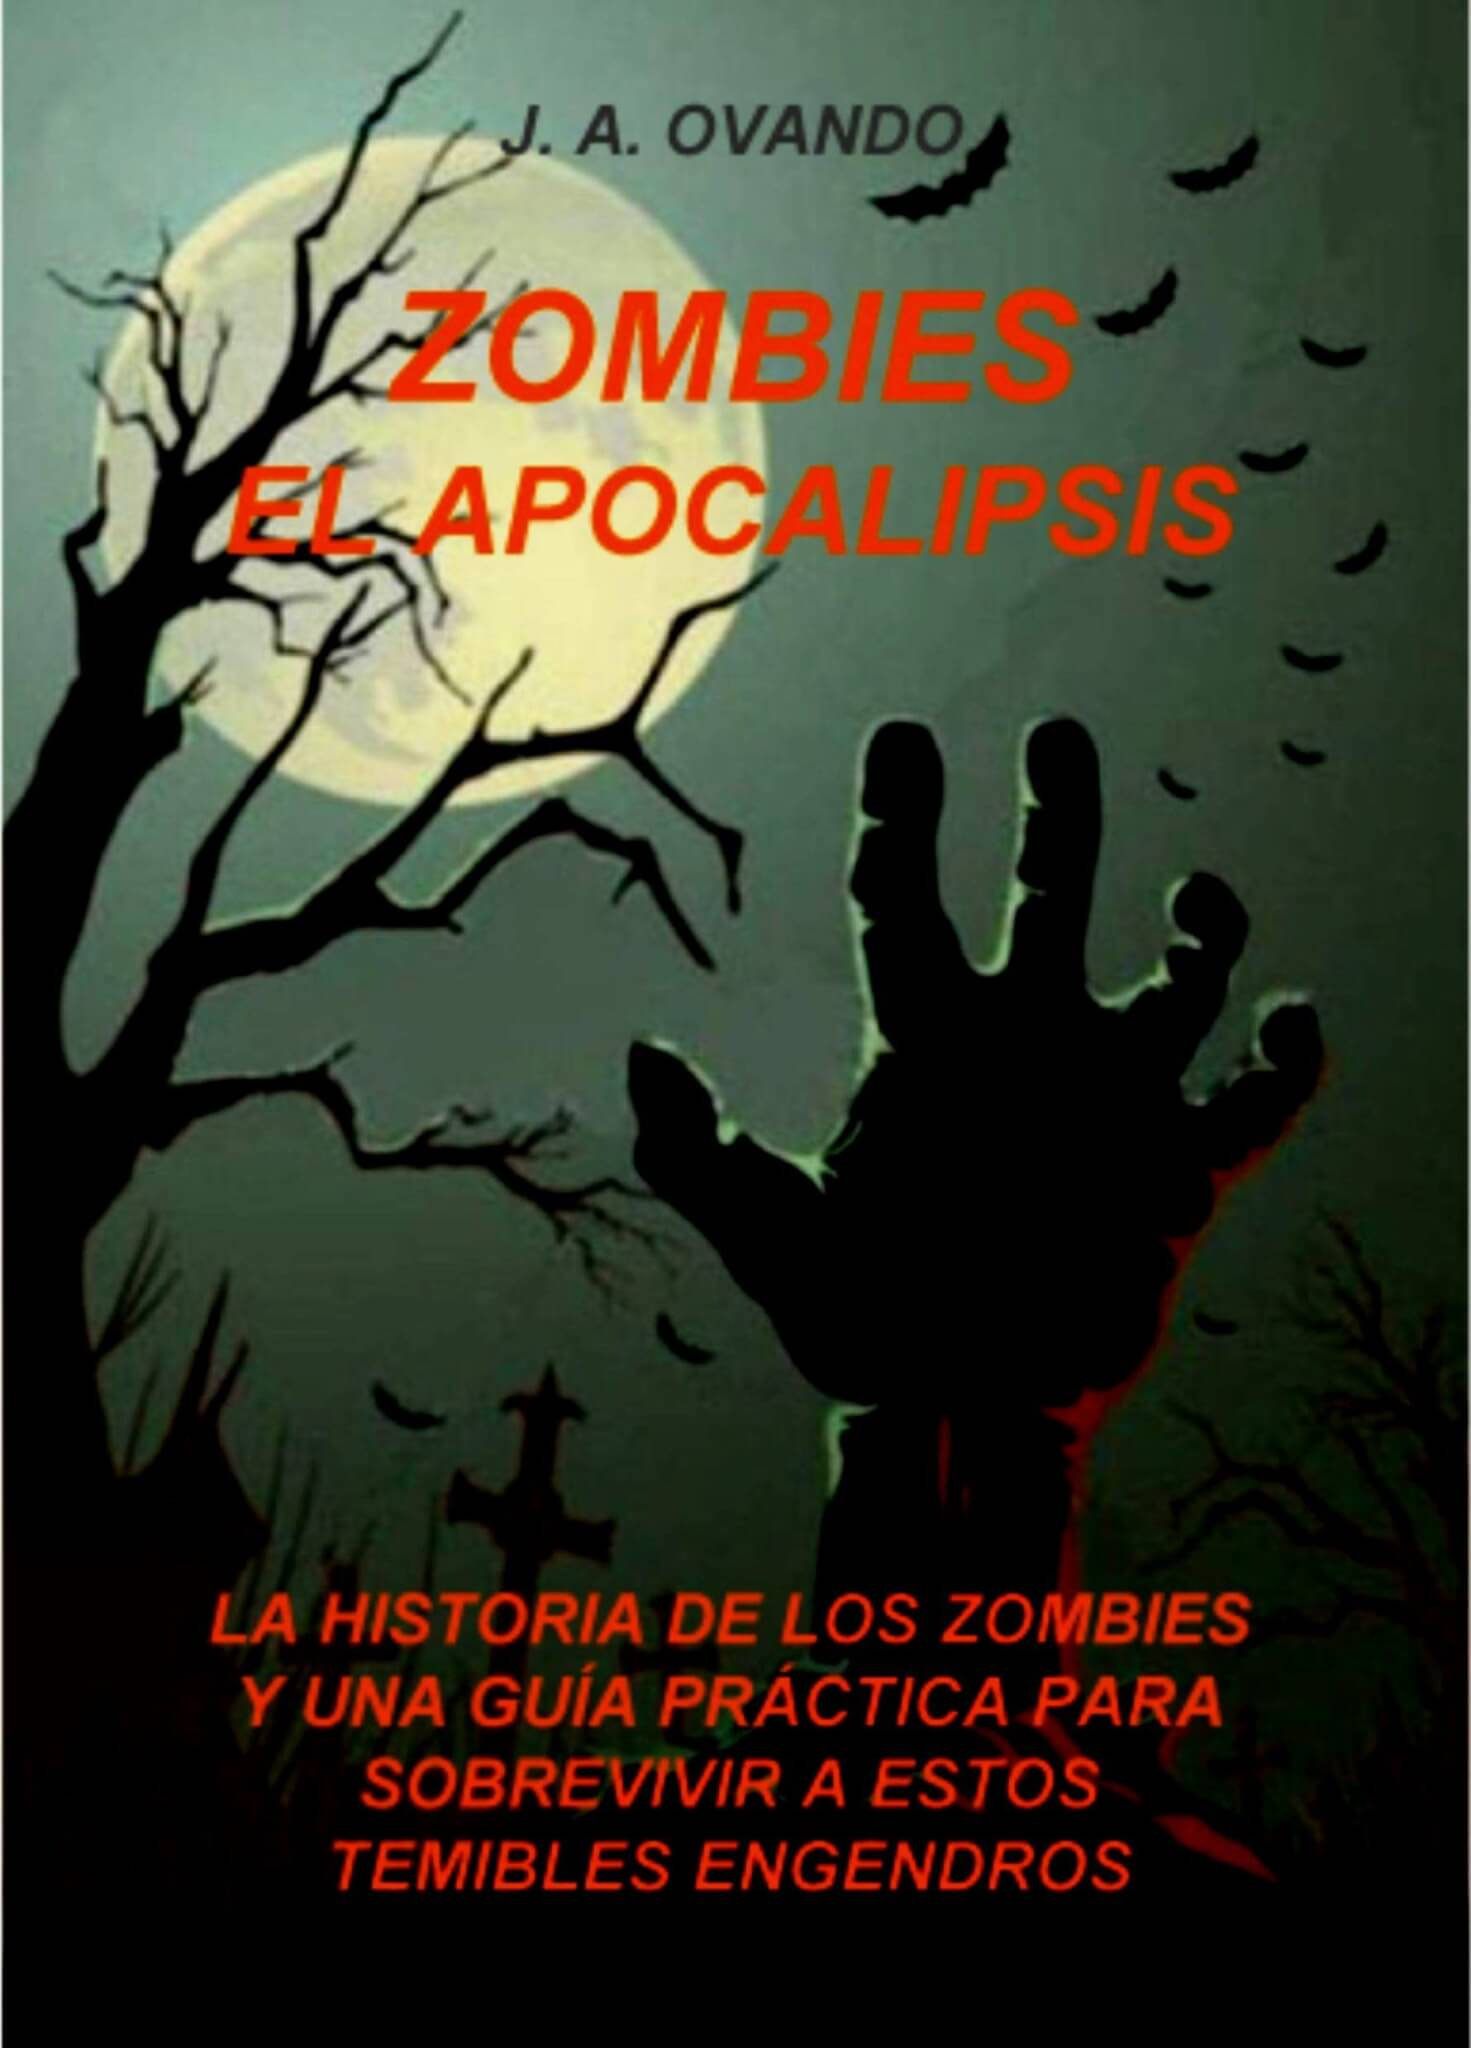 Zombies, el apocalipsis